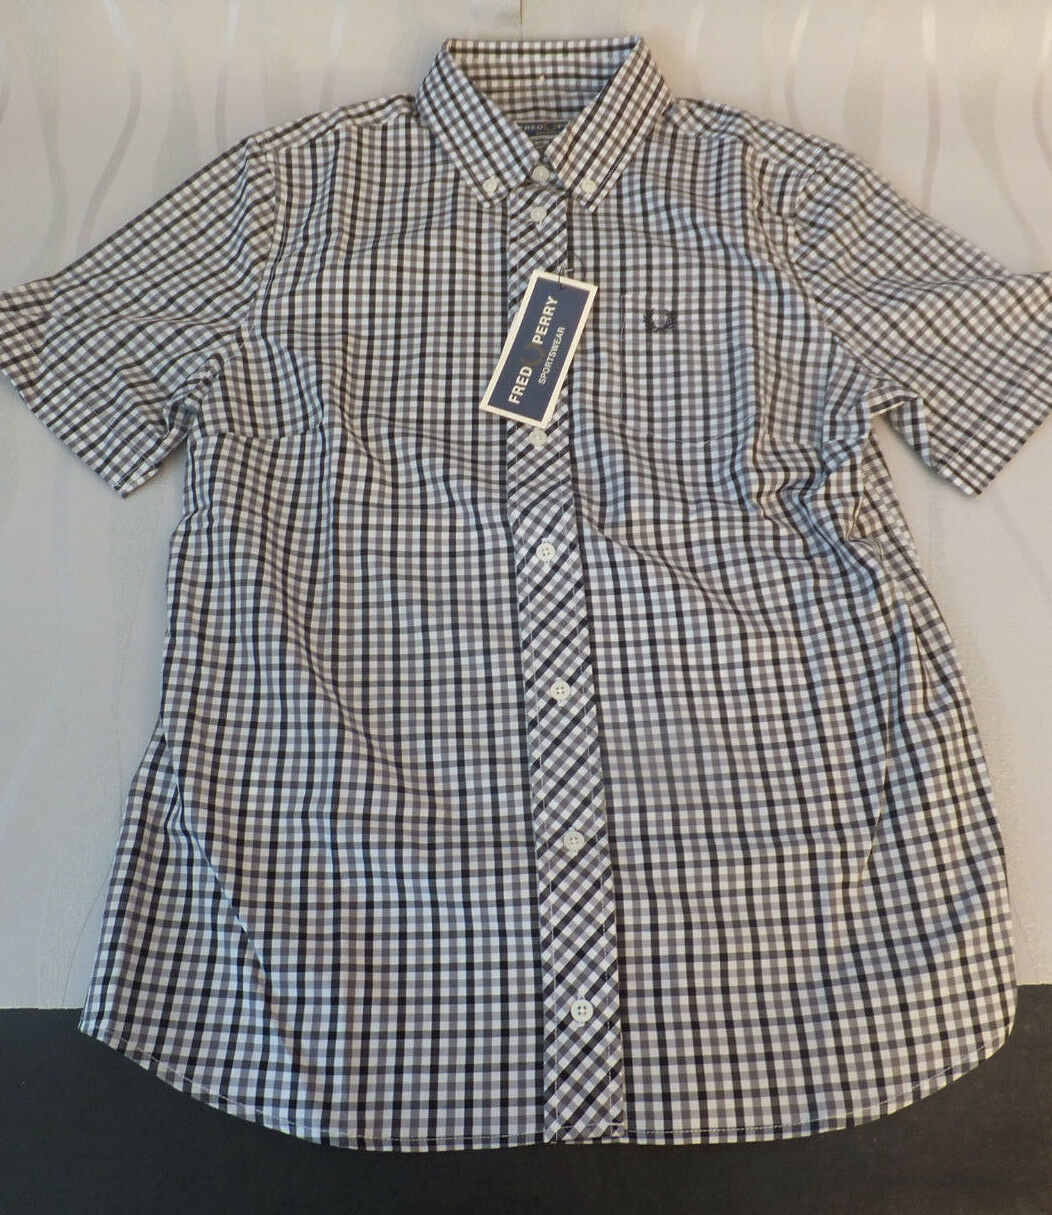 Fred Perry donna uscite Button Down gingam Woven Shirt BLAK BNWT Rp